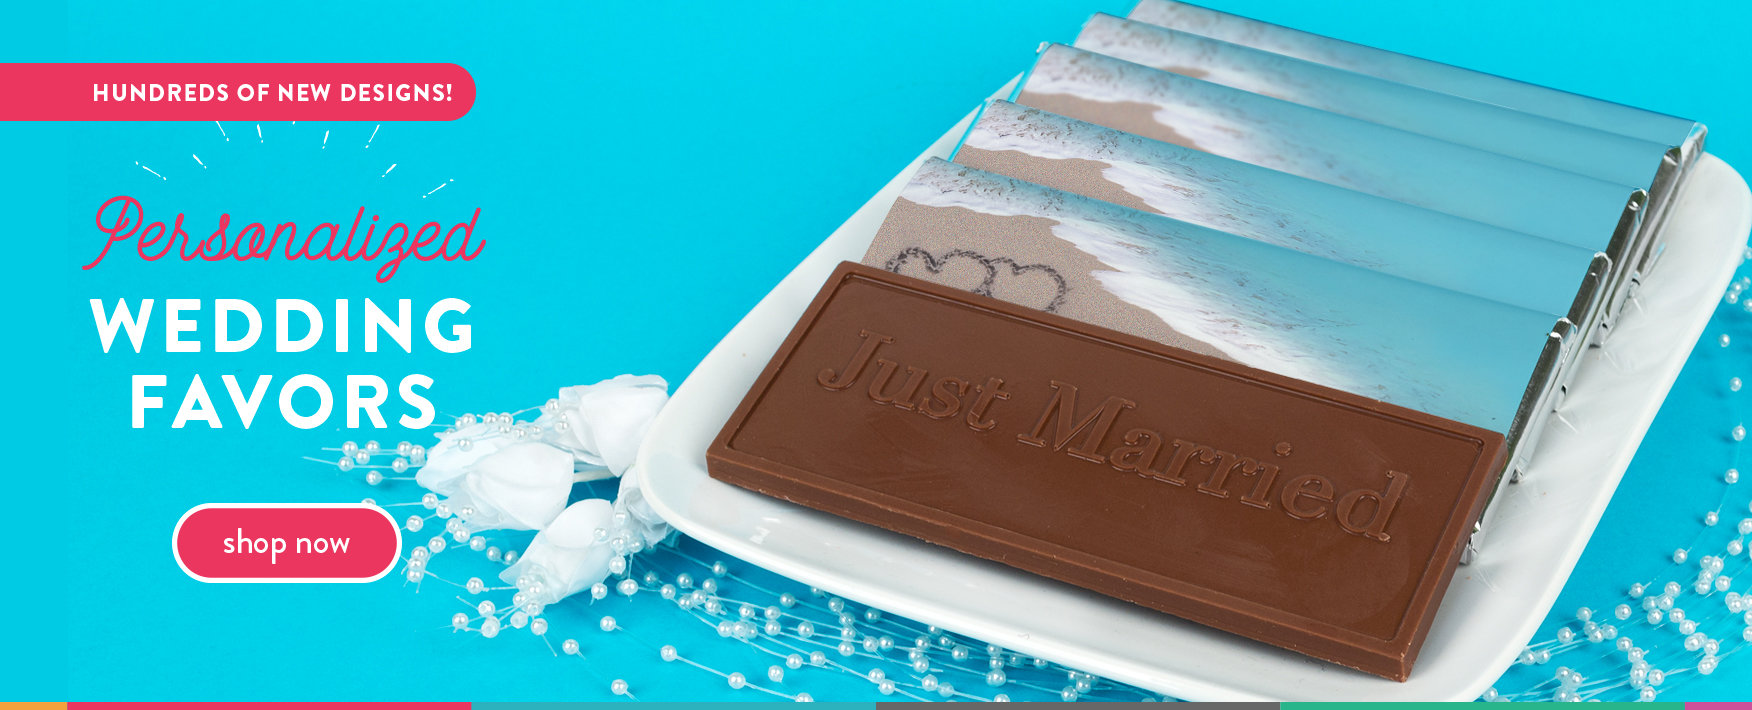 personalized wedding candy bars, hershey's kisses and chocolate covered oreo gift packs